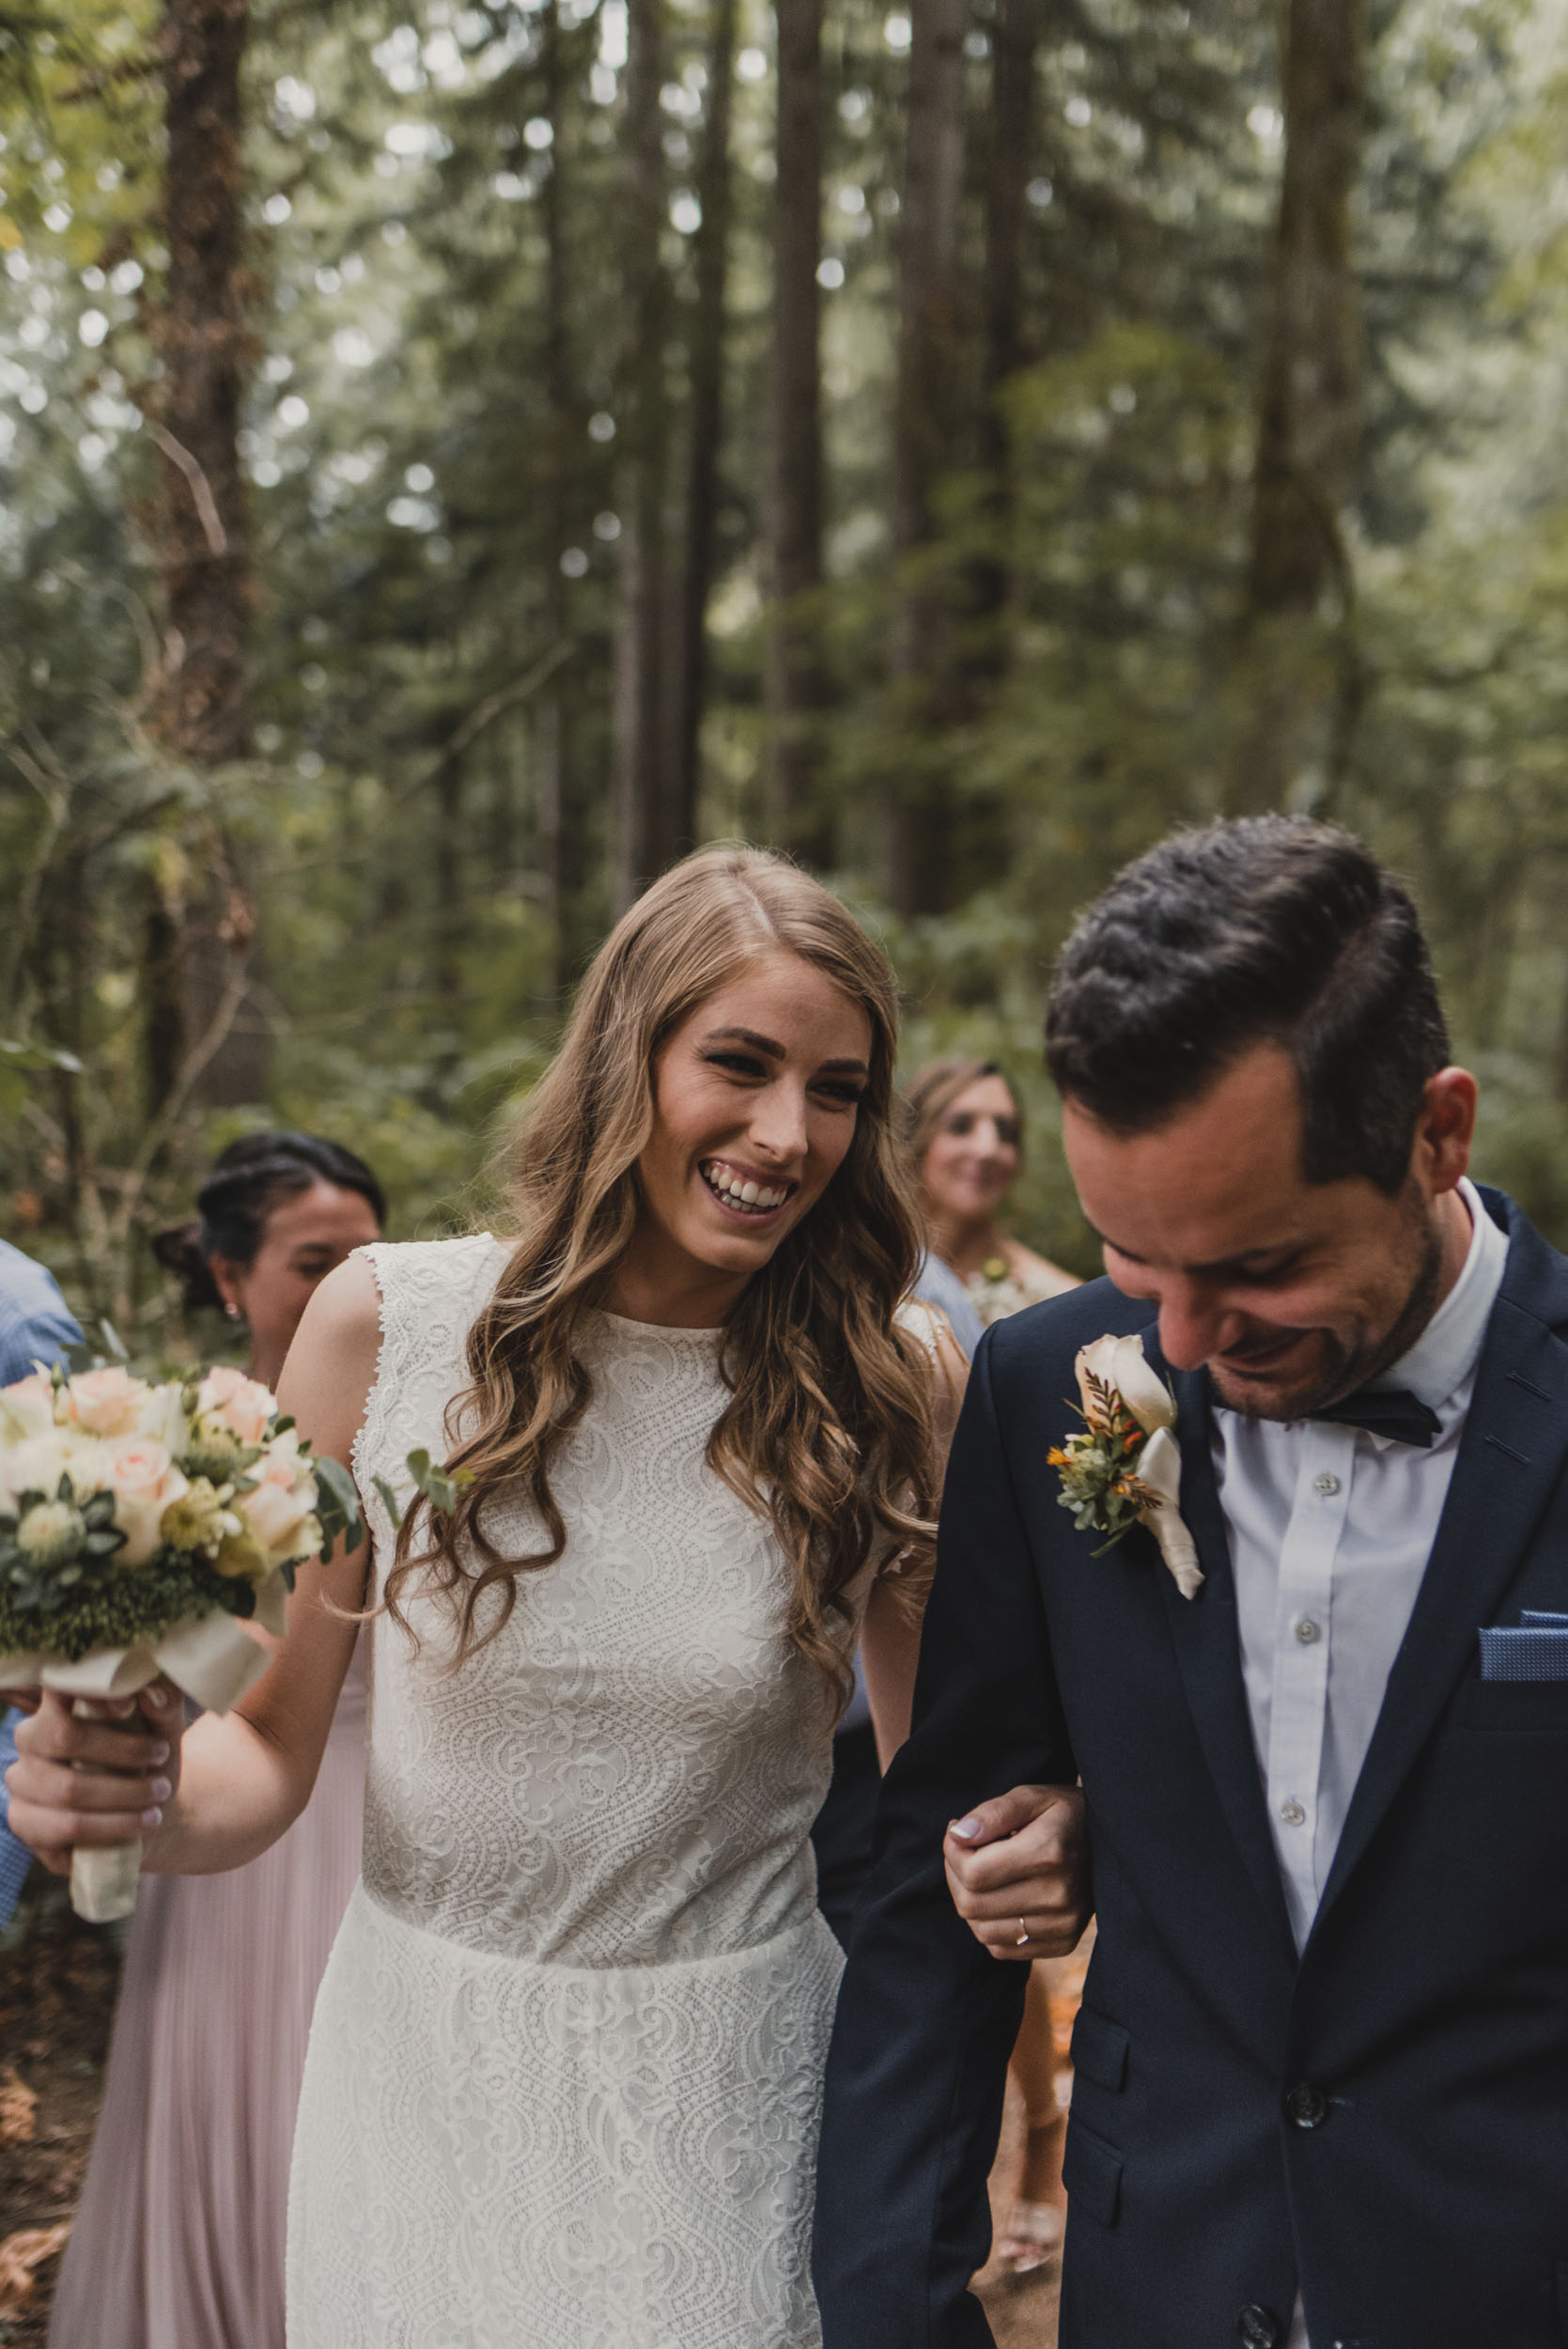 Bride and groom walk through forest